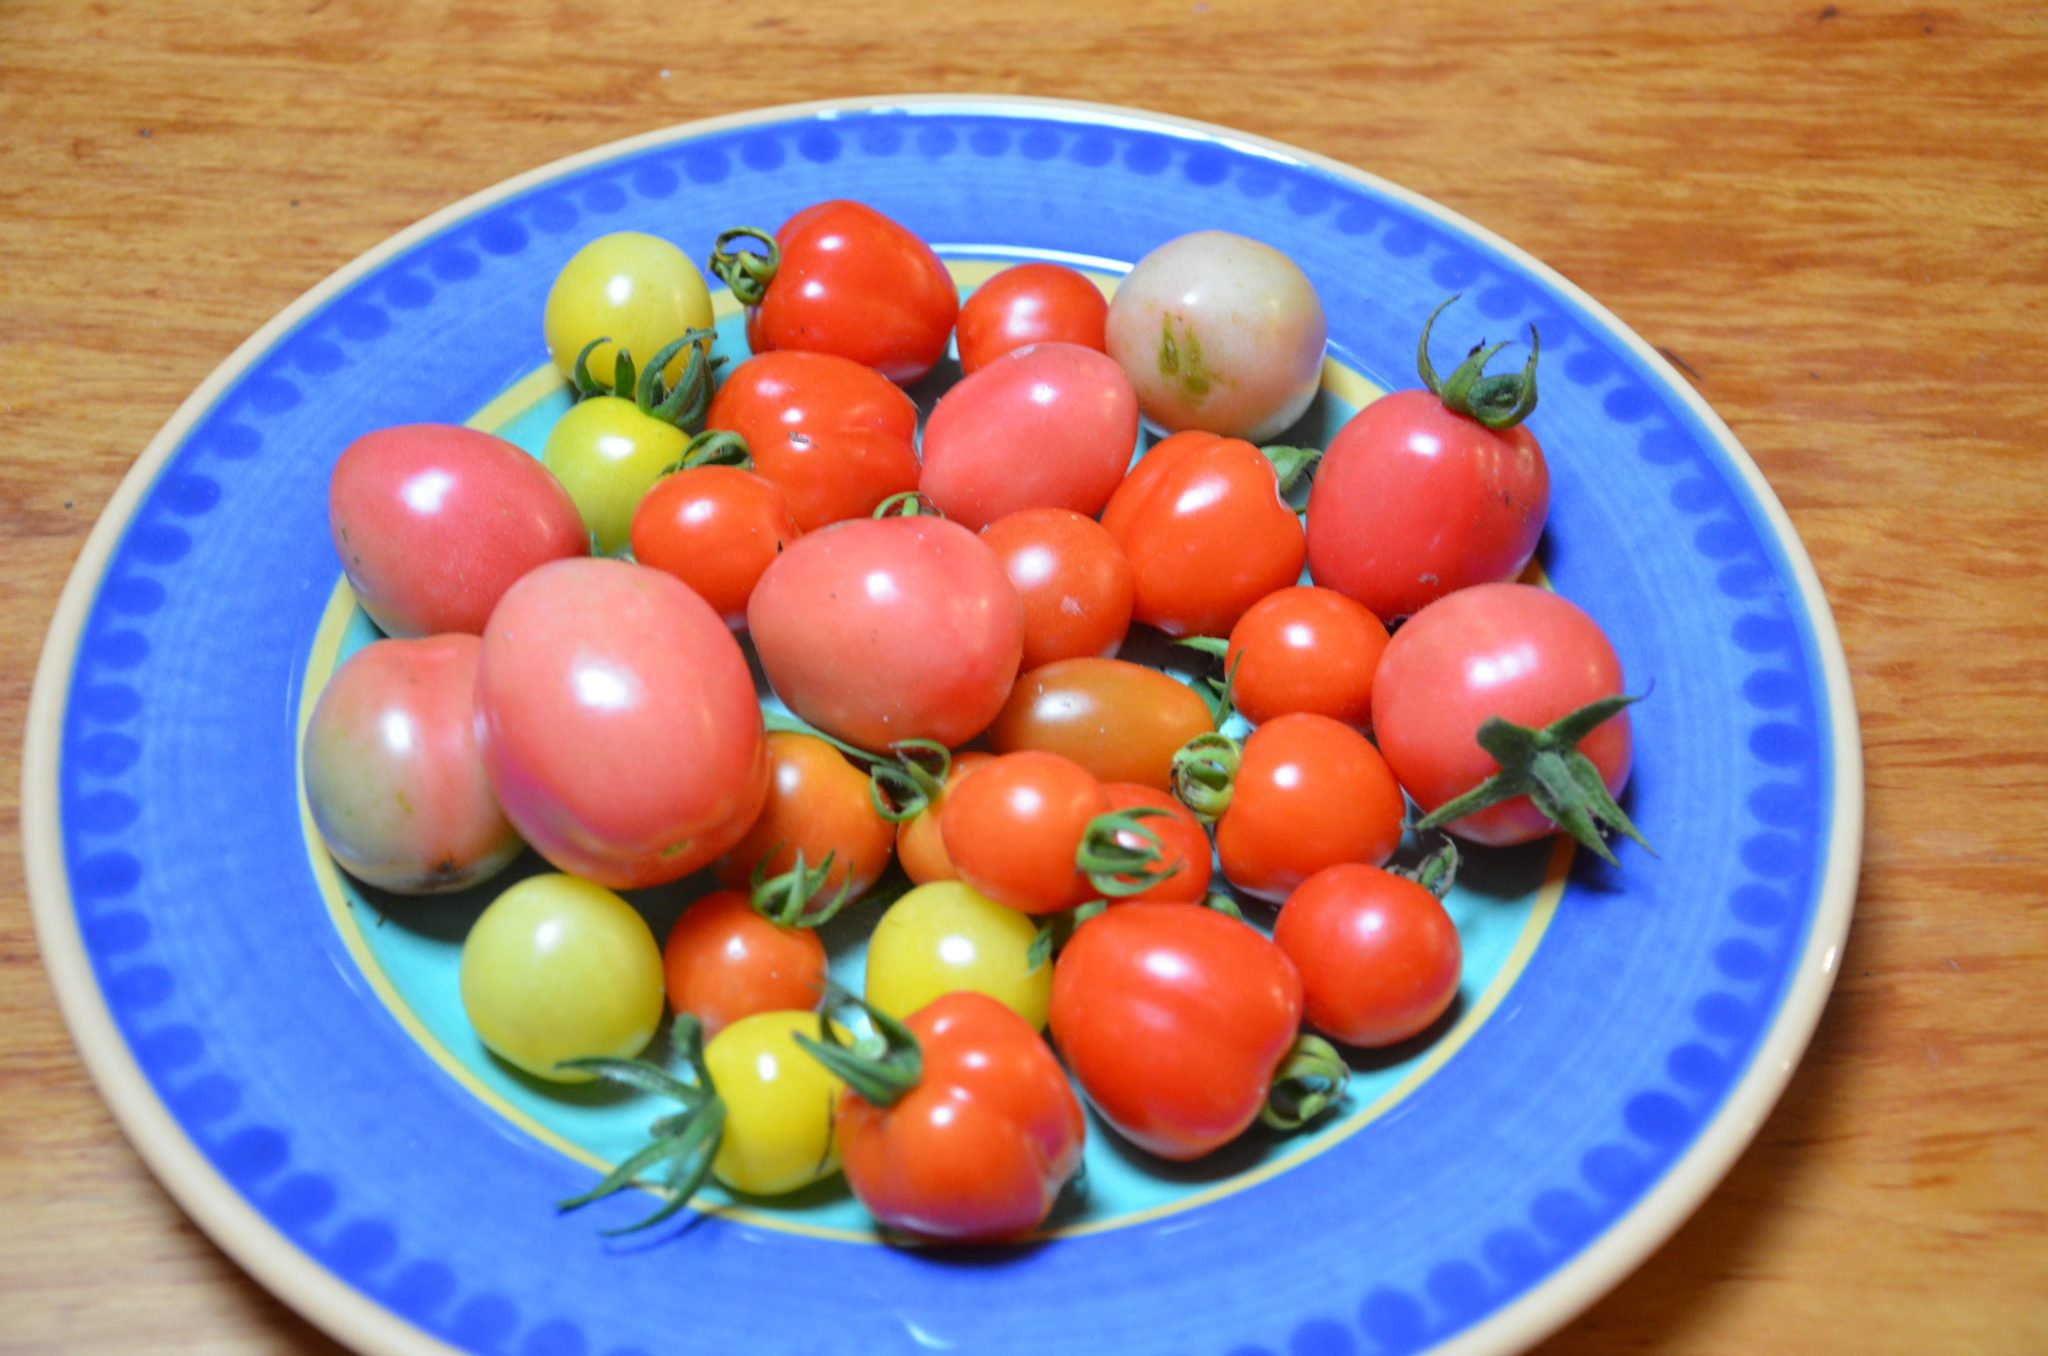 grow your own food my productive backyard diy gardening garden southern highlands wildes meadow burrawang robertson garden consultant grow your own good food growing cherry tomatoes self sown